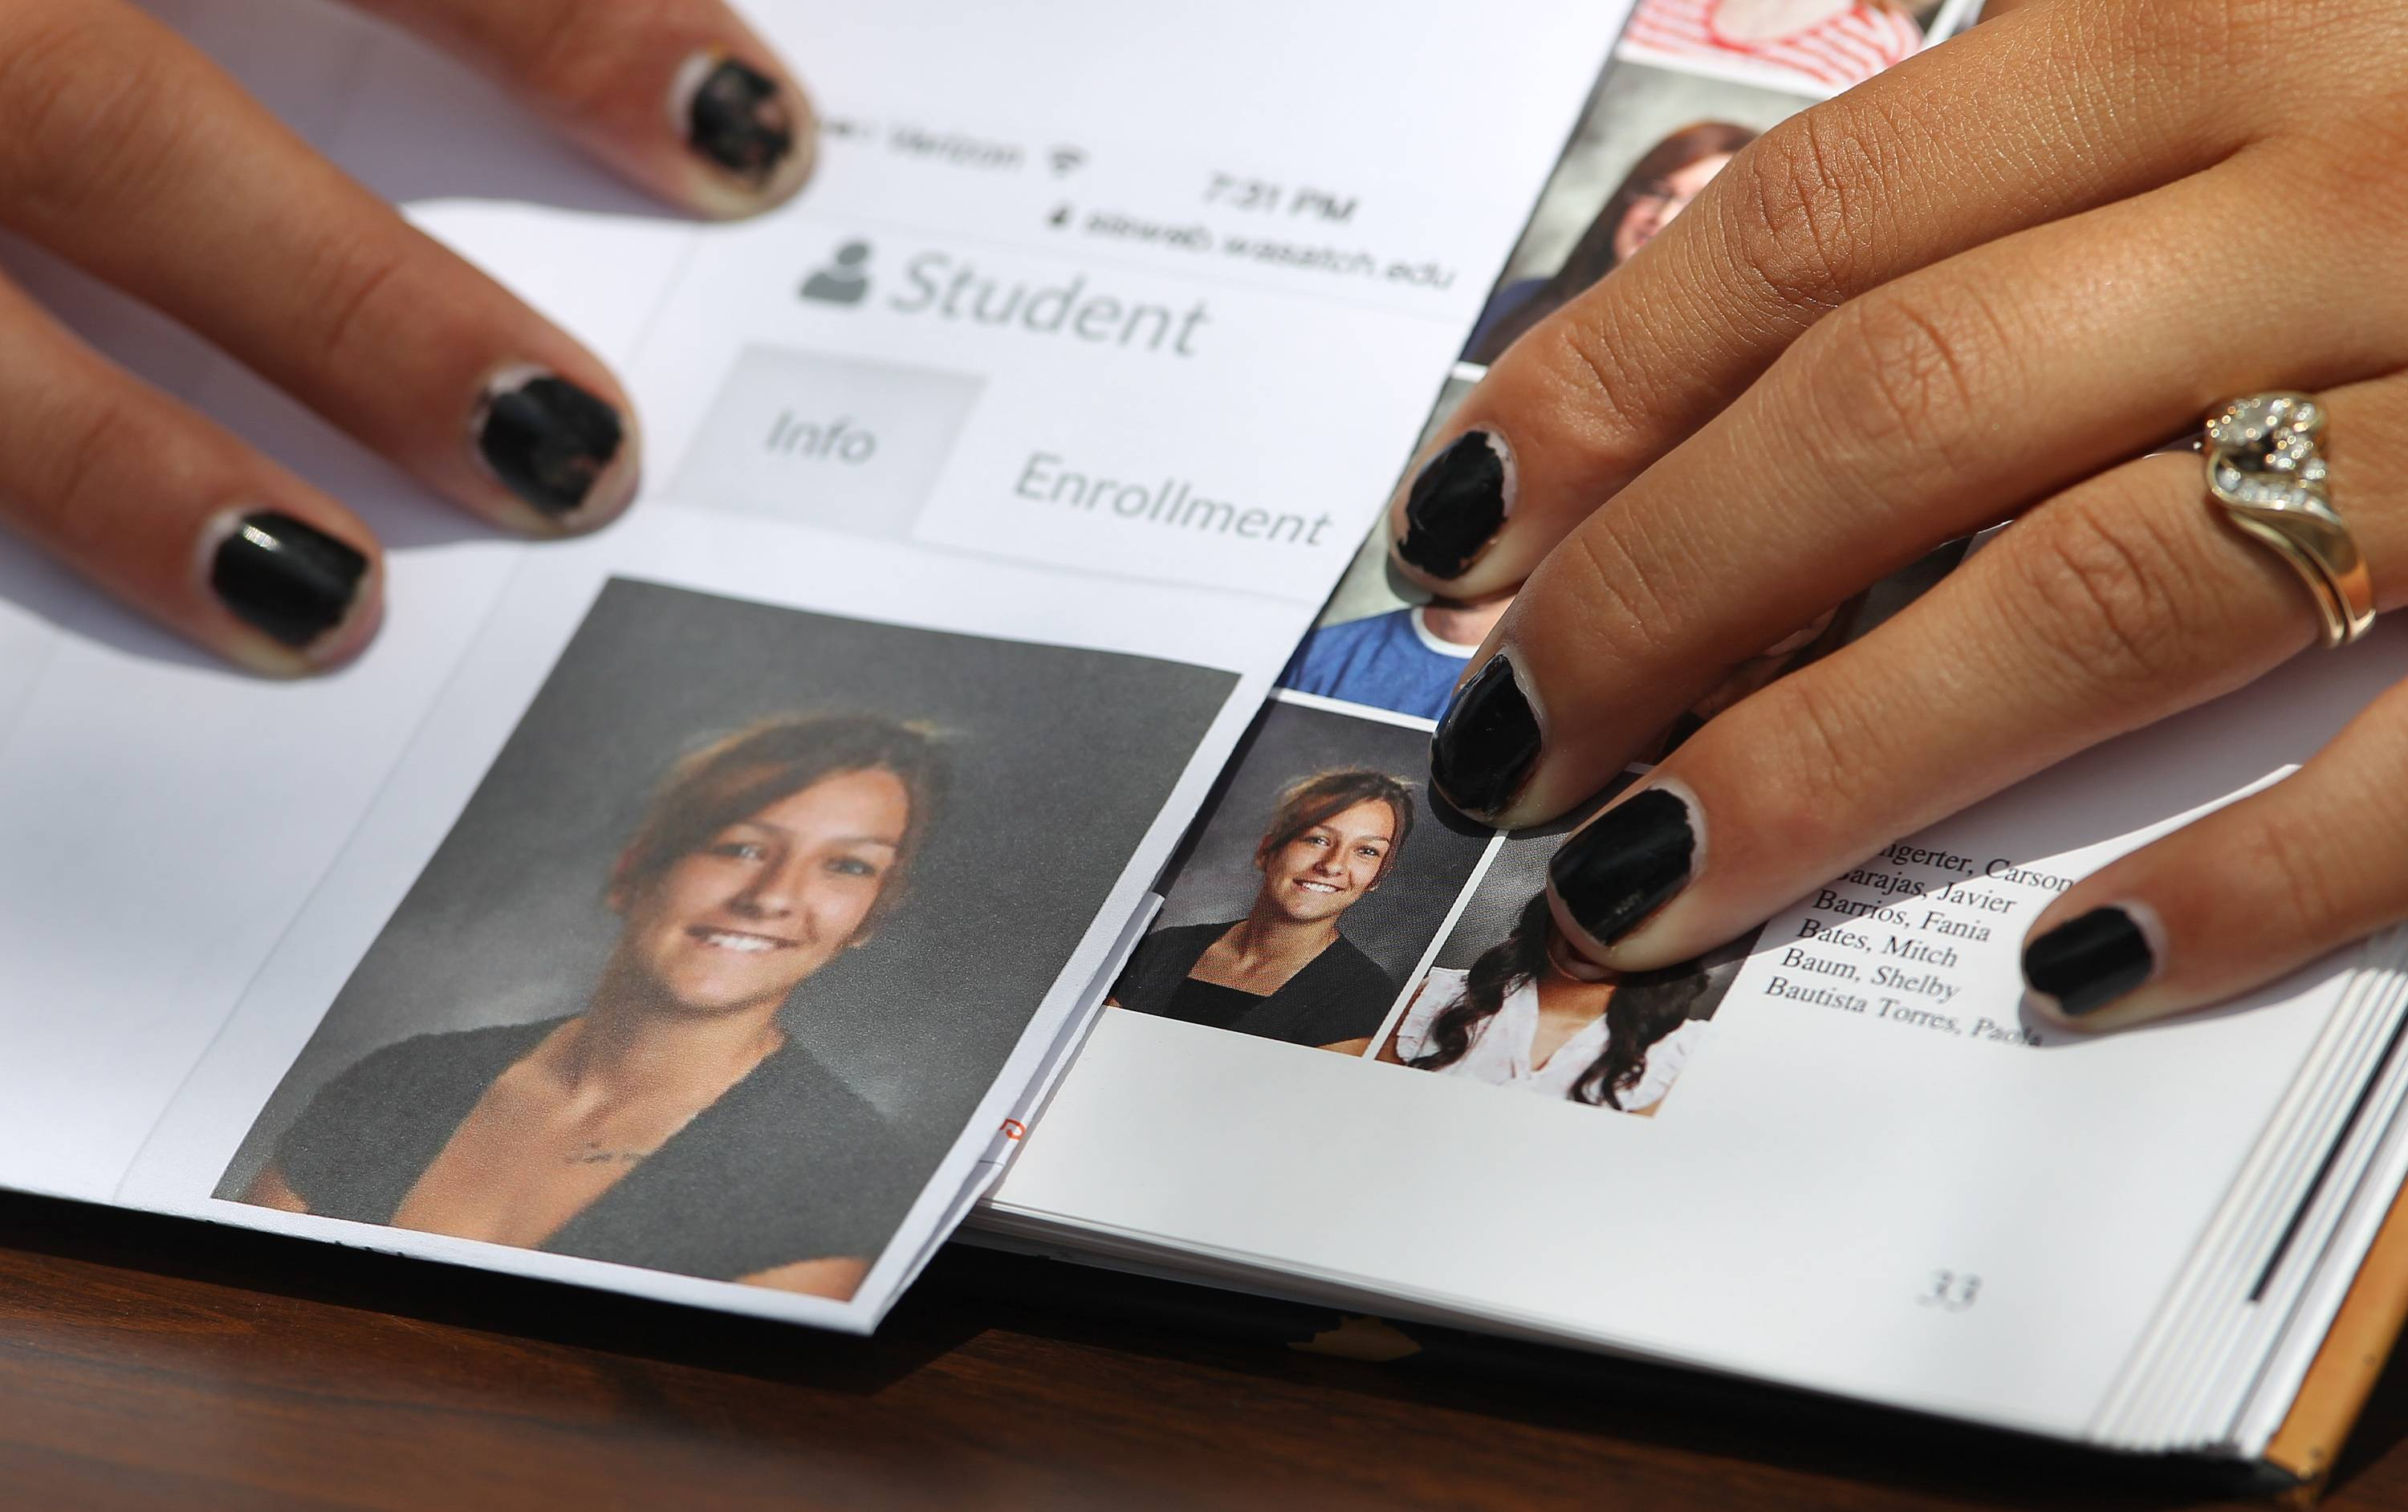 Wasatch High School sophomore Shelby Baum, 16, points to yearbook proof, left, and her altered school yearbook photo, right.